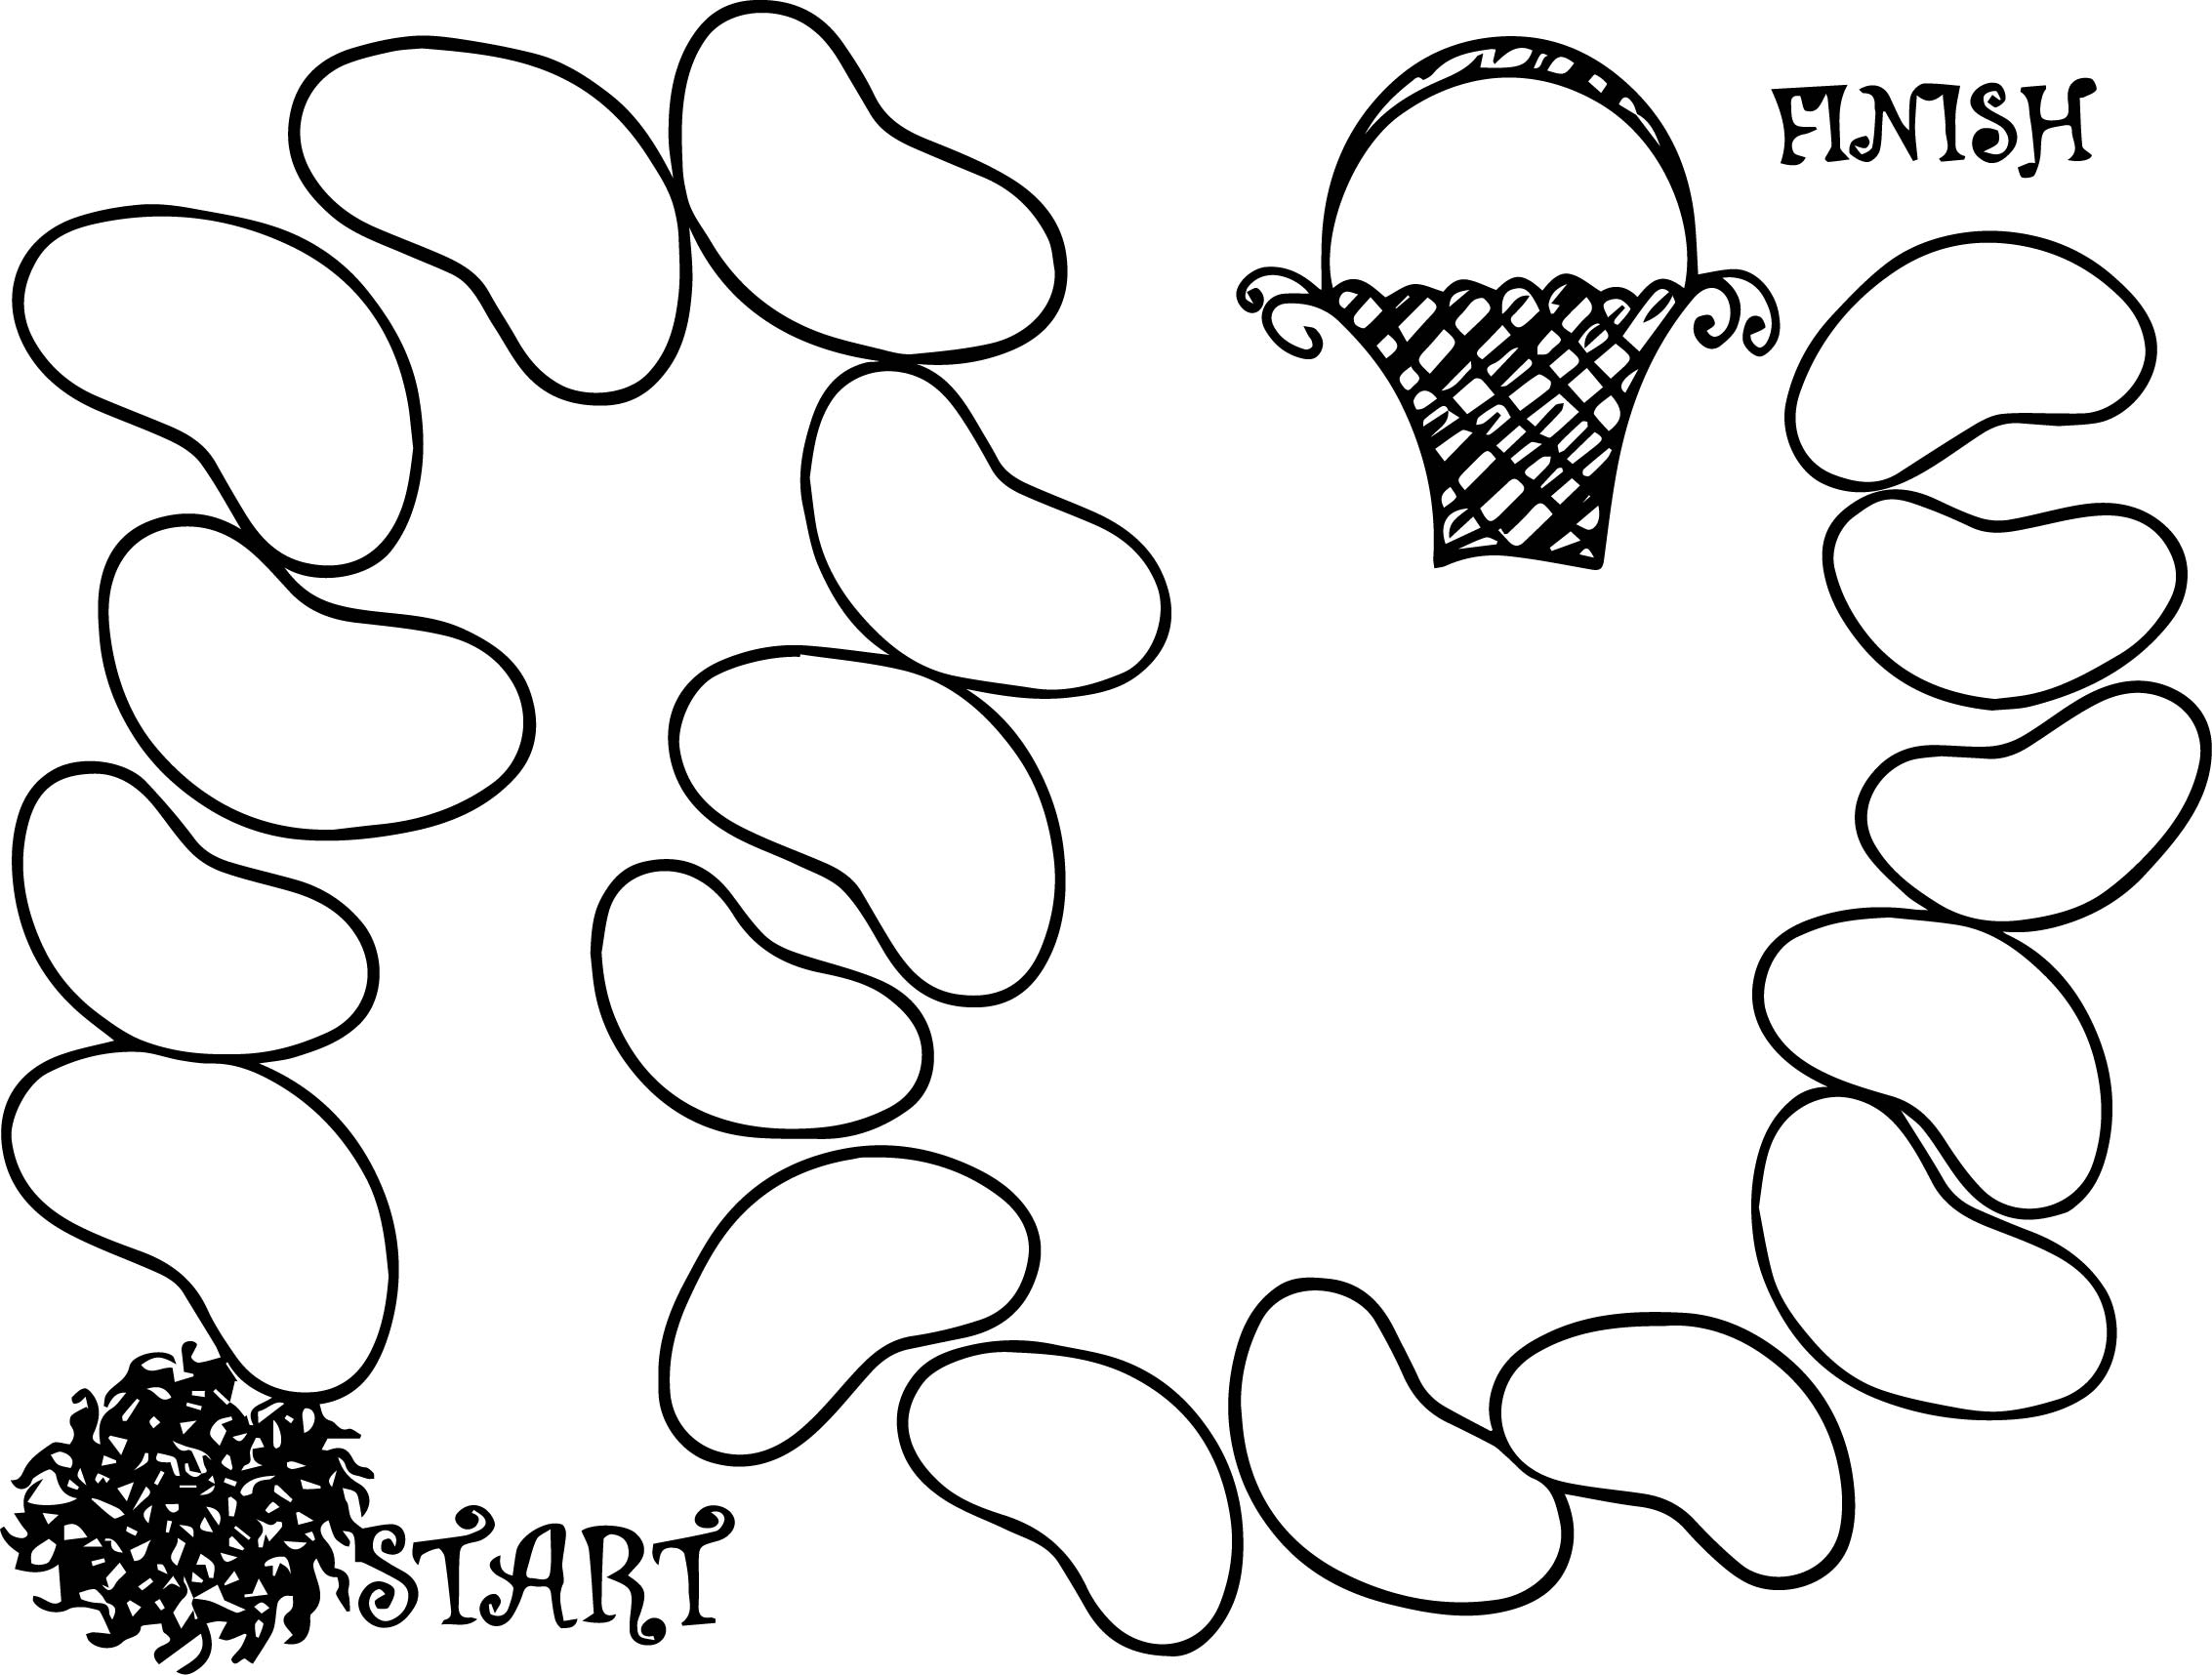 Board beans coloring page for Bean coloring page